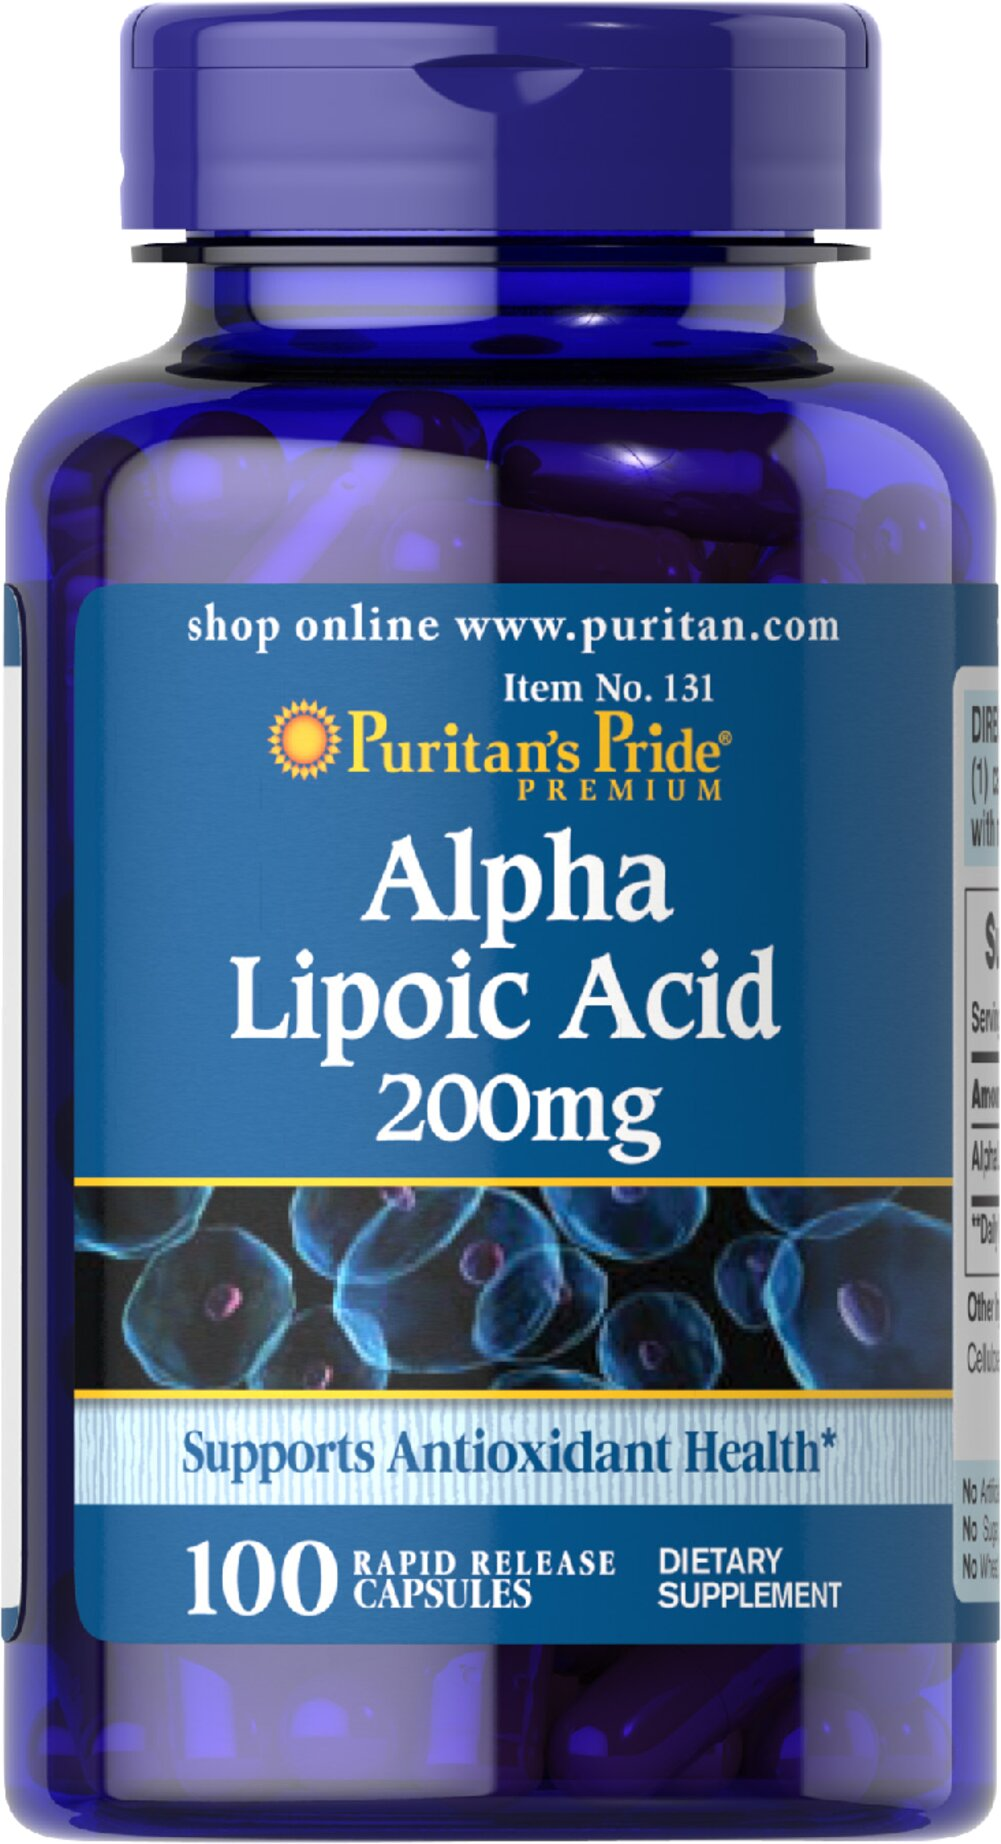 "Alpha Lipoic Acid 200 mg <p>Alpha Lipoic Acid (ALA) helps metabolize sugar, especially in muscles, where it promotes energy.**</p><p>ALA is also beneficial for liver health, and helps to revitalize the underlying structure of the skin so it can look healthier and more radiant.**</p><p>ALA is often called the ""universal antioxidant"" for its ability to help neutralize cell-damaging free radicals.** </p> 100 Capsules 200 mg $19.99"